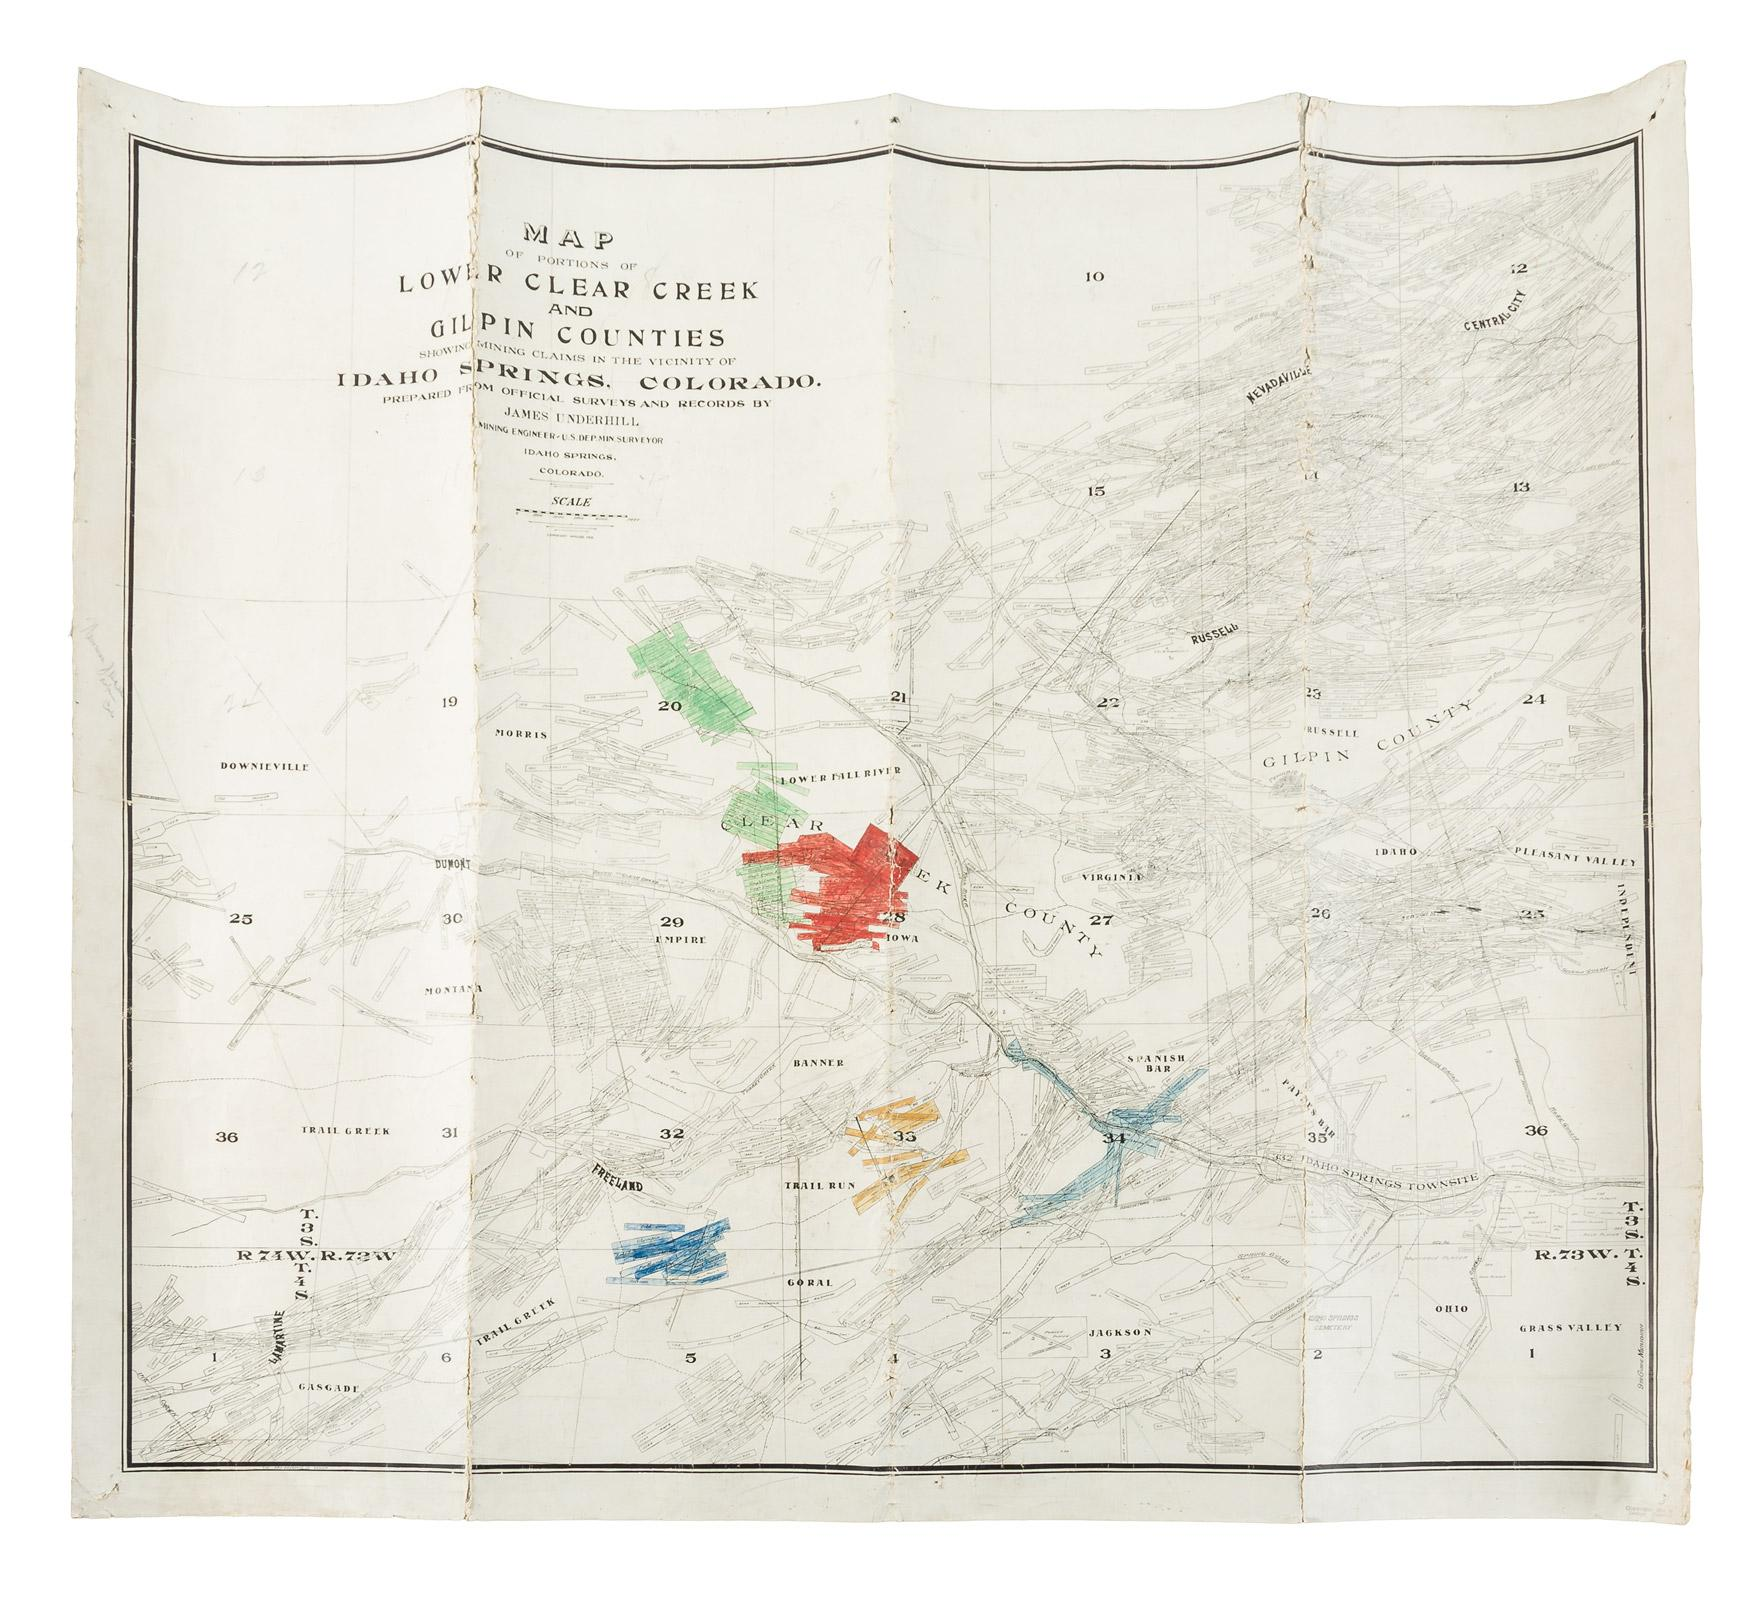 Map of portions of lower Clear Creek and Gilpin Counties